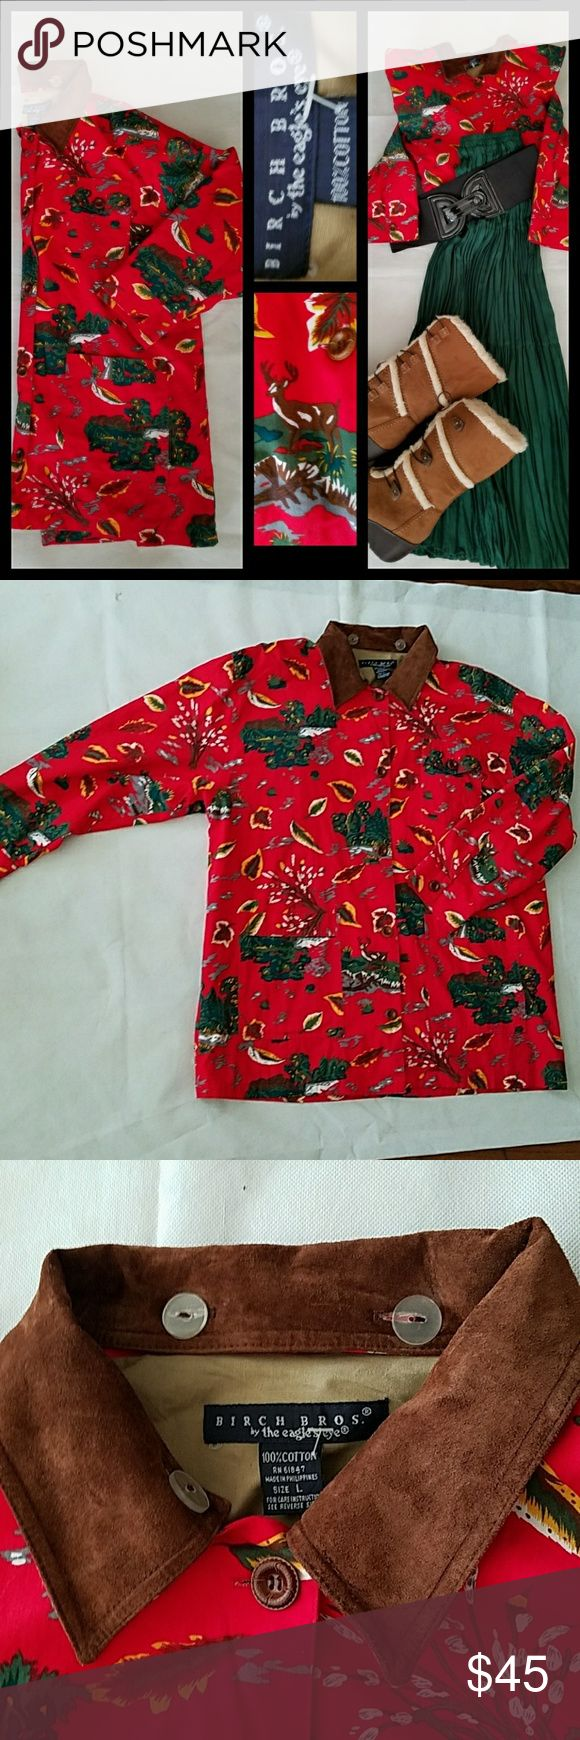 Birch Brothers Falling Leaves/Deers Blazer L NWOT Birch Brothers by the Eagle's Eye New no tags RN 61847  Women's winter pattern  Evergreens & Deers, falling leaves Primary colirs:right red/evergreen  Light jacket/blazer  Brown suede removable collar Long sleeves  3 front pockets Button up through-out  Fully lined Size large  Pit to pit 24 Length 34 100% cotton  Made in the Philippines  Machine washable (removable suede collar) Birch Brothers by the eagle's eye Jackets & Coats Utility…